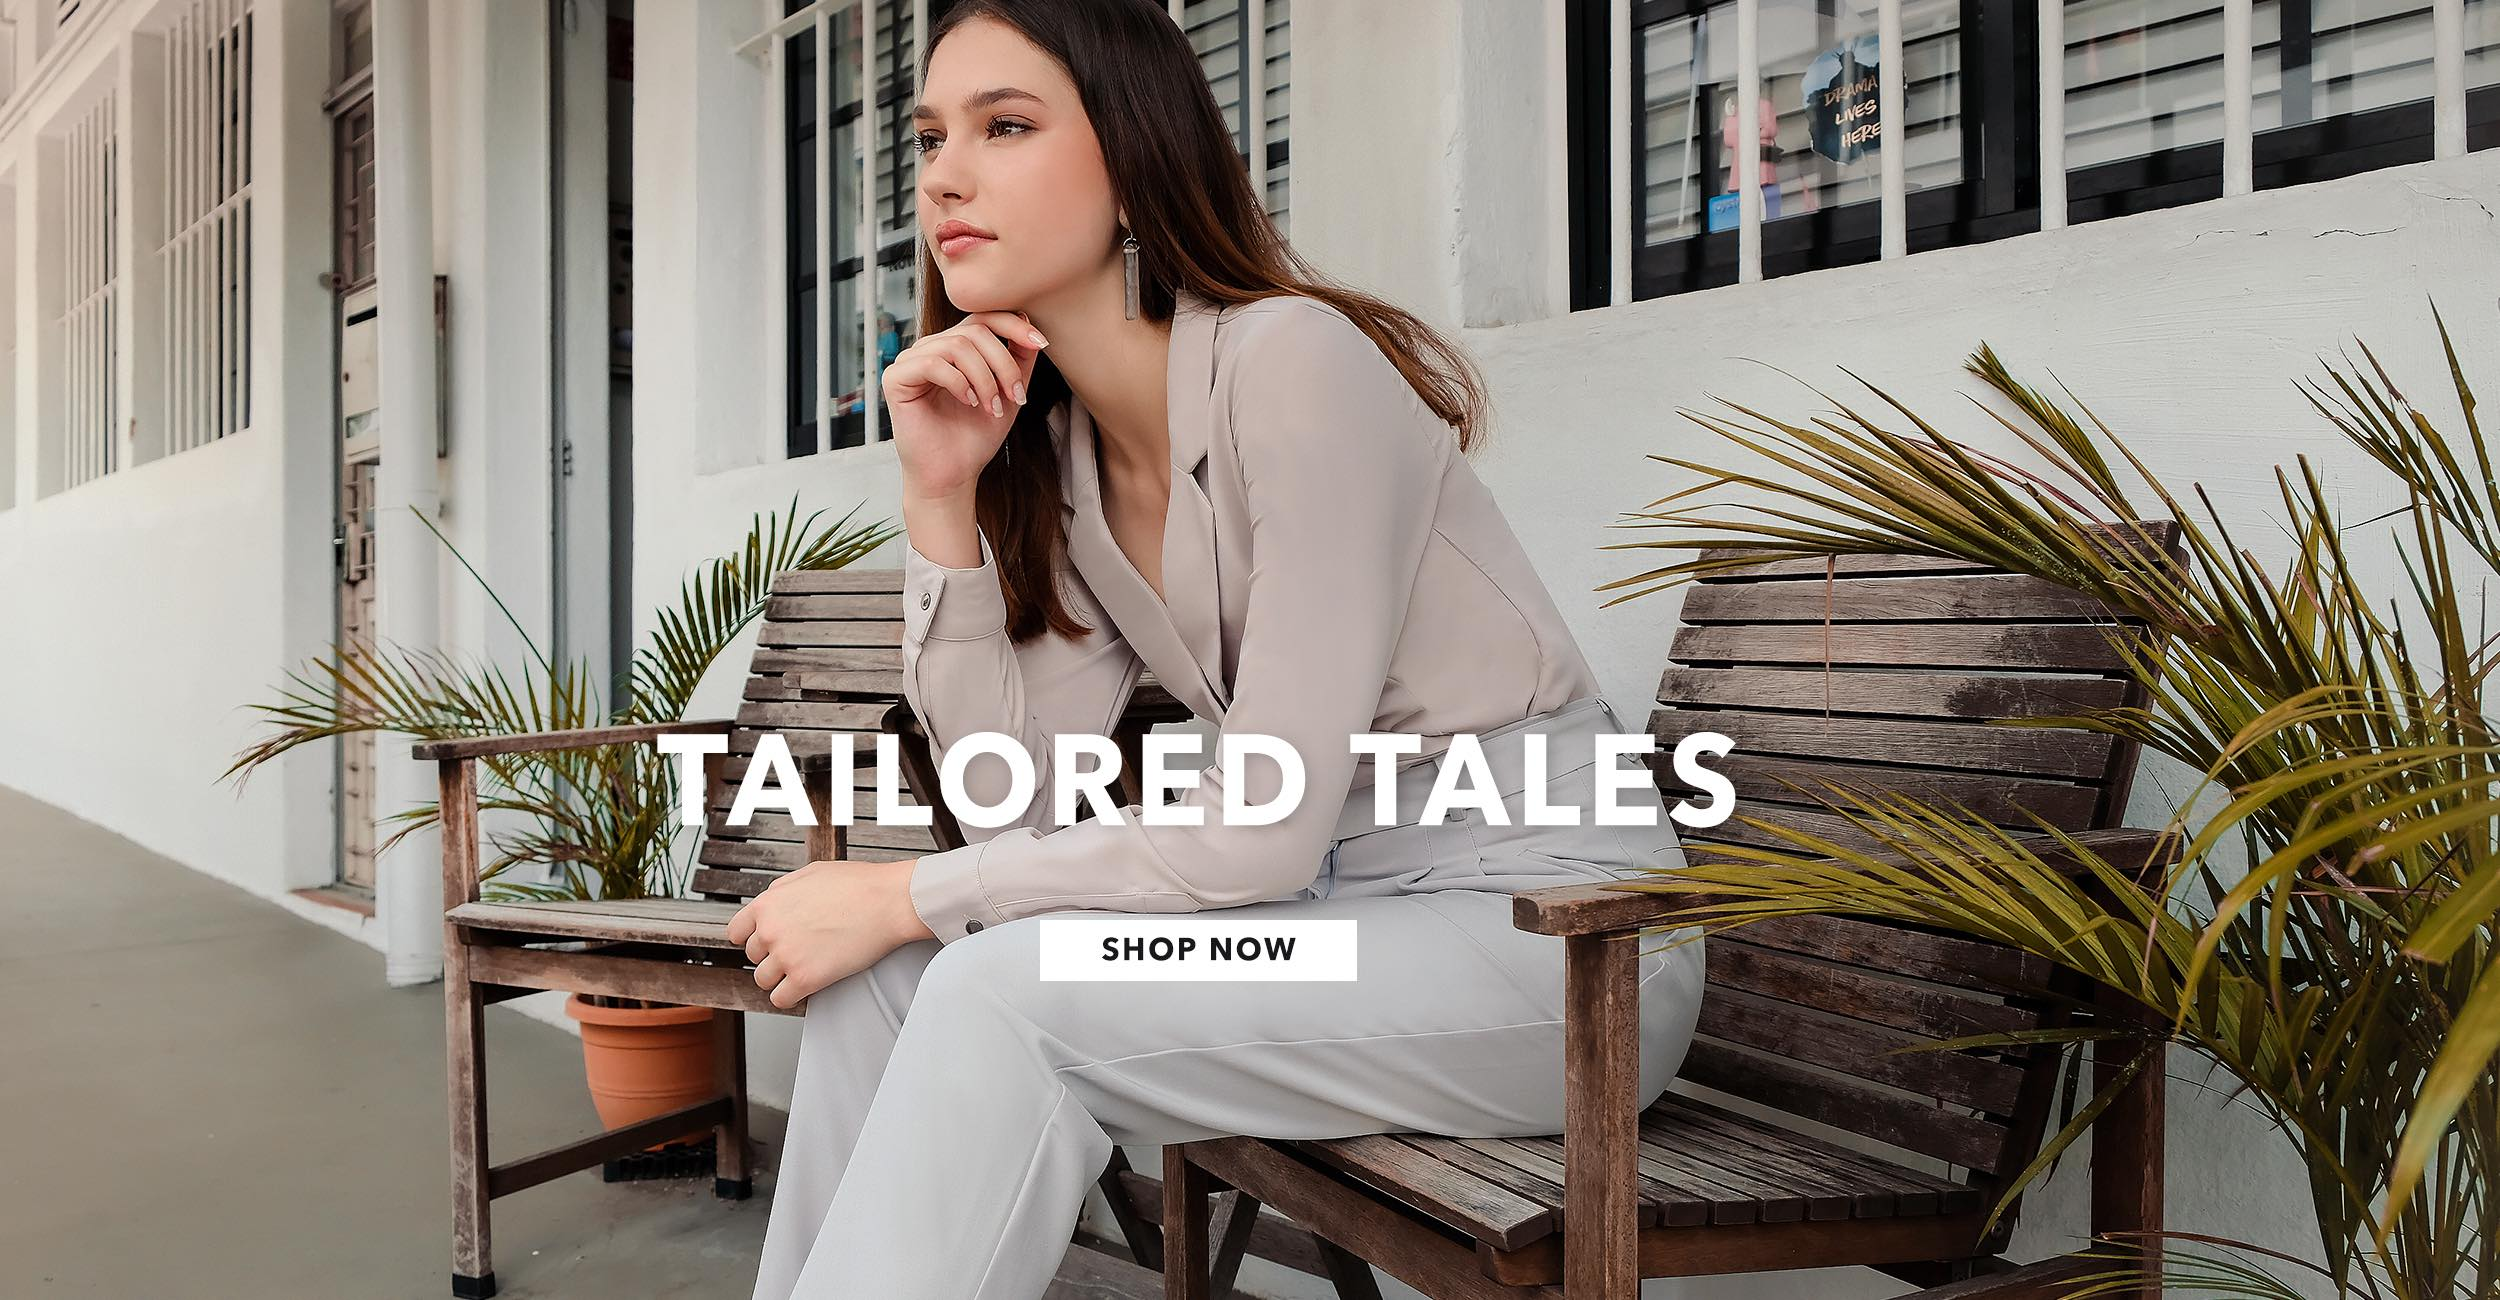 Tailored Tales